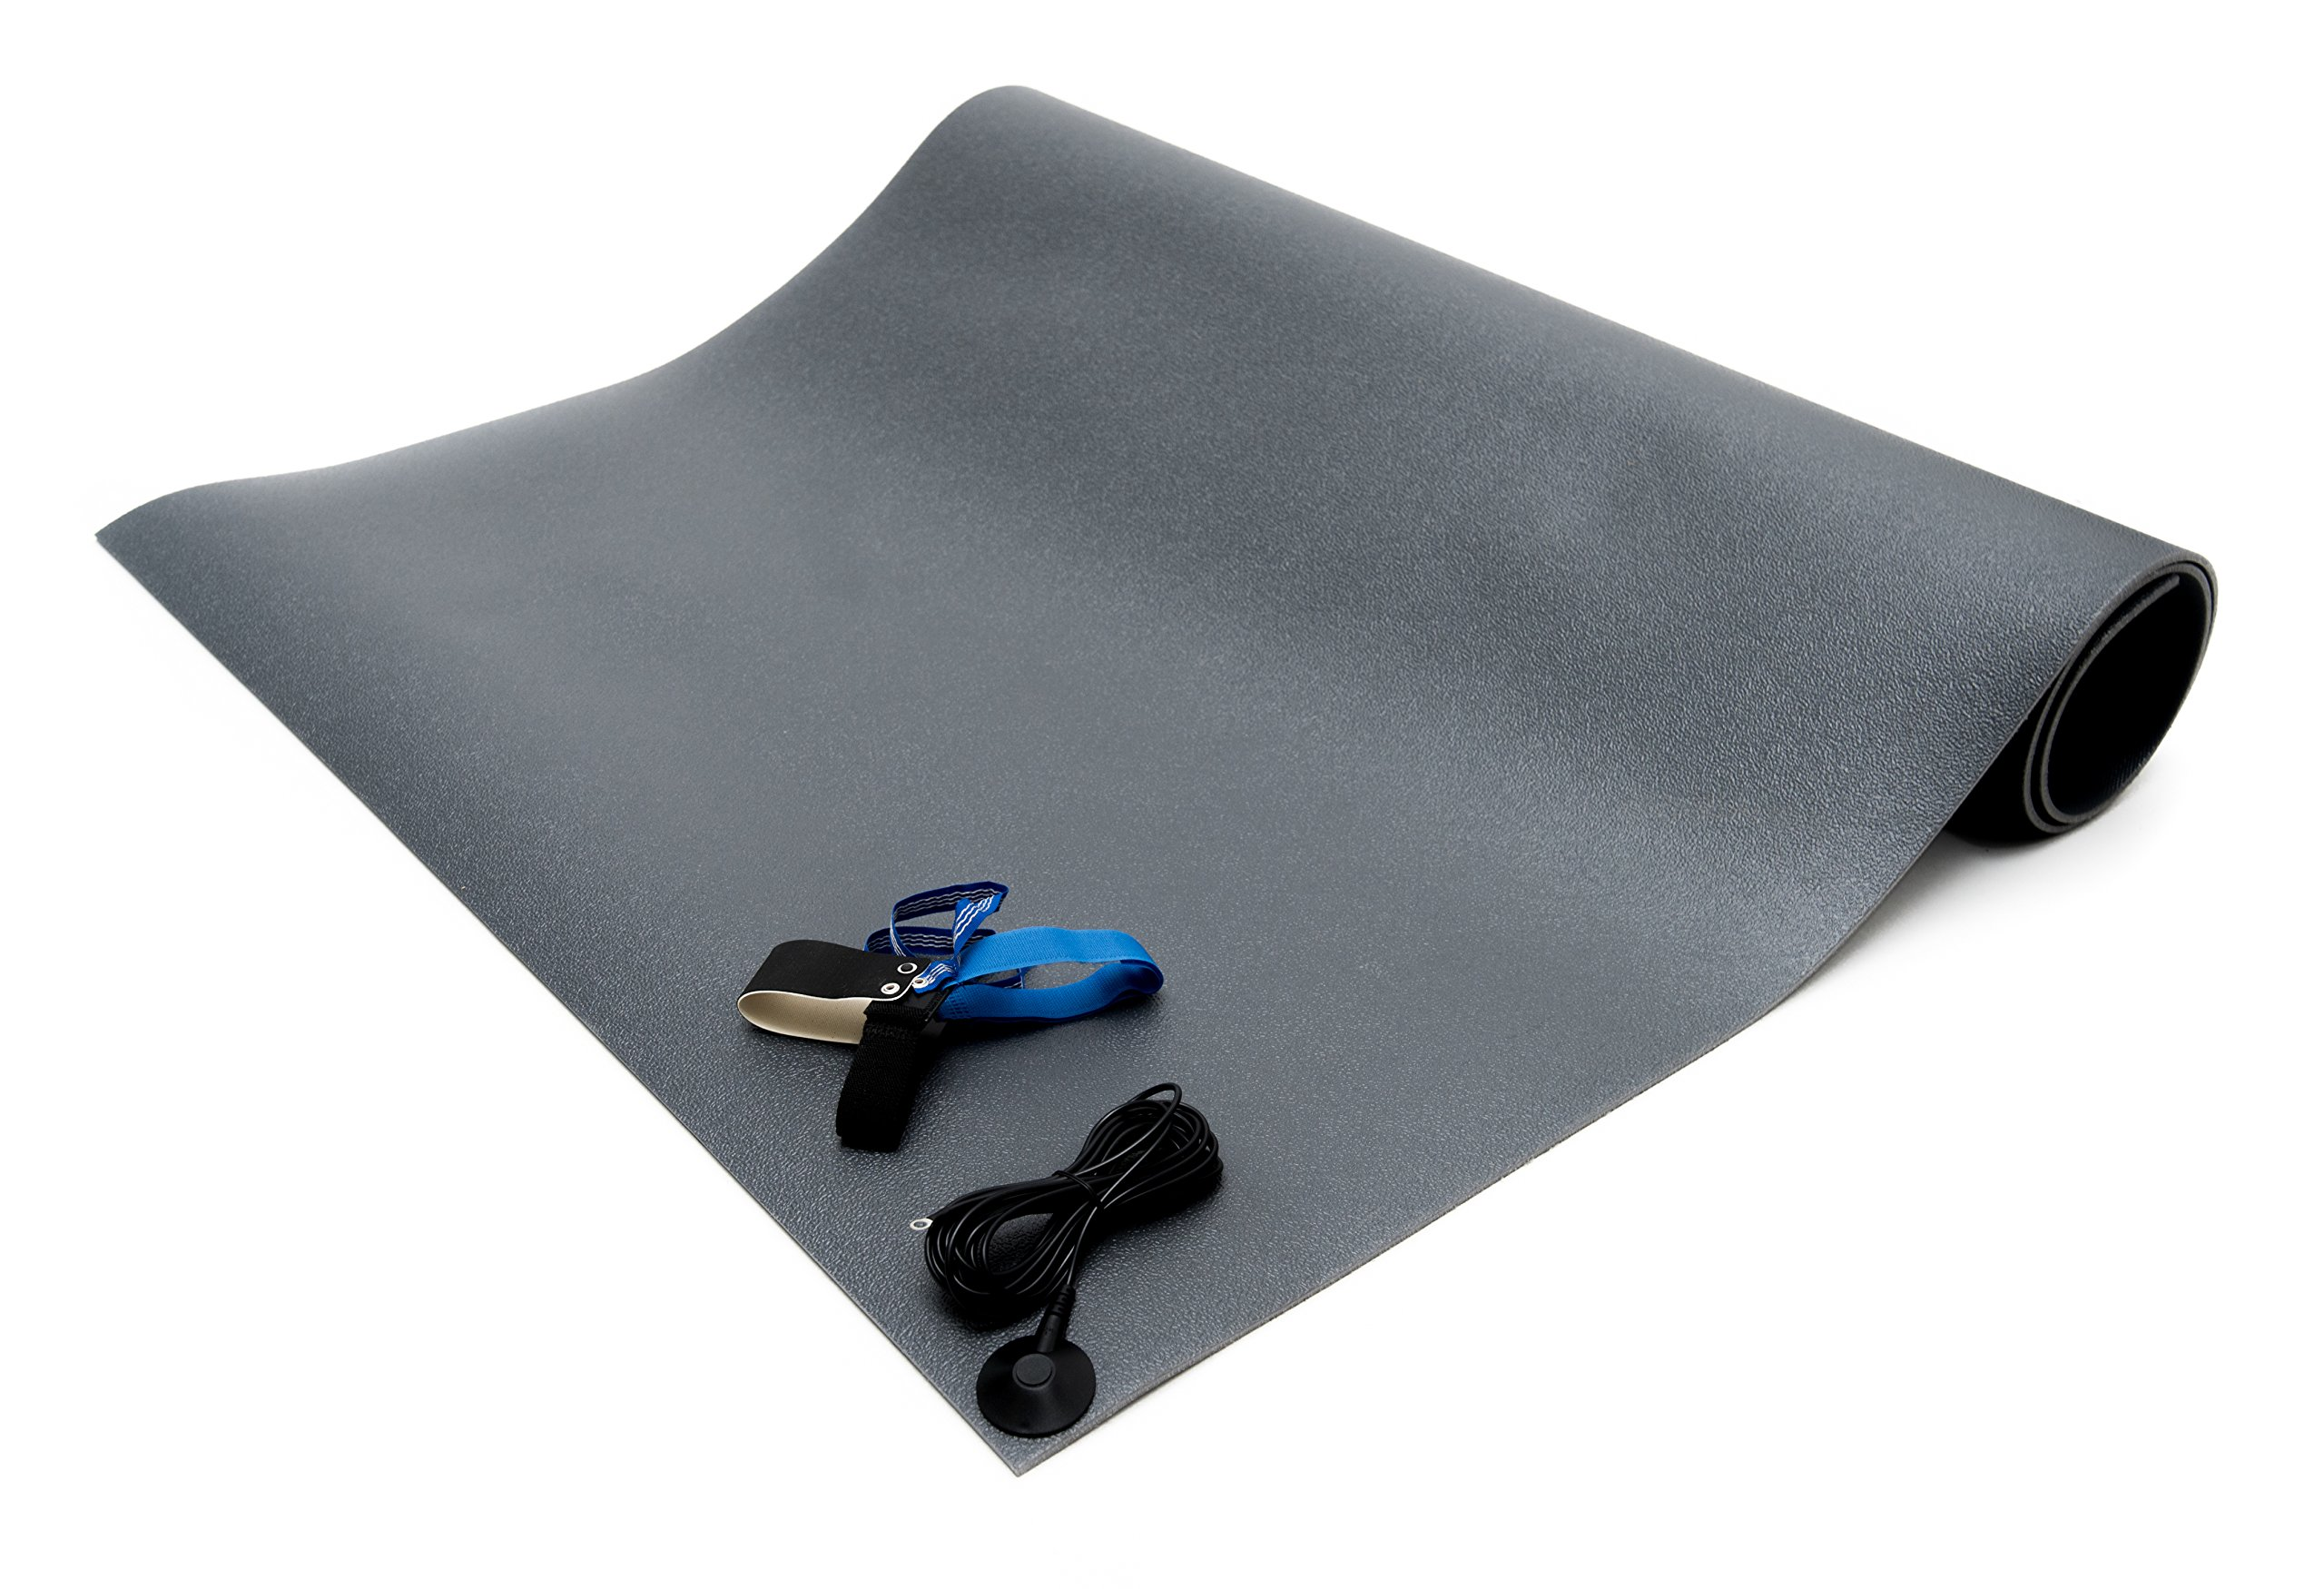 Bertech ESD Chair Mat Kit with a Heel Grounder and Grounding Cord, 3' Wide x 6' Long x 0.190'' Thick, Gray